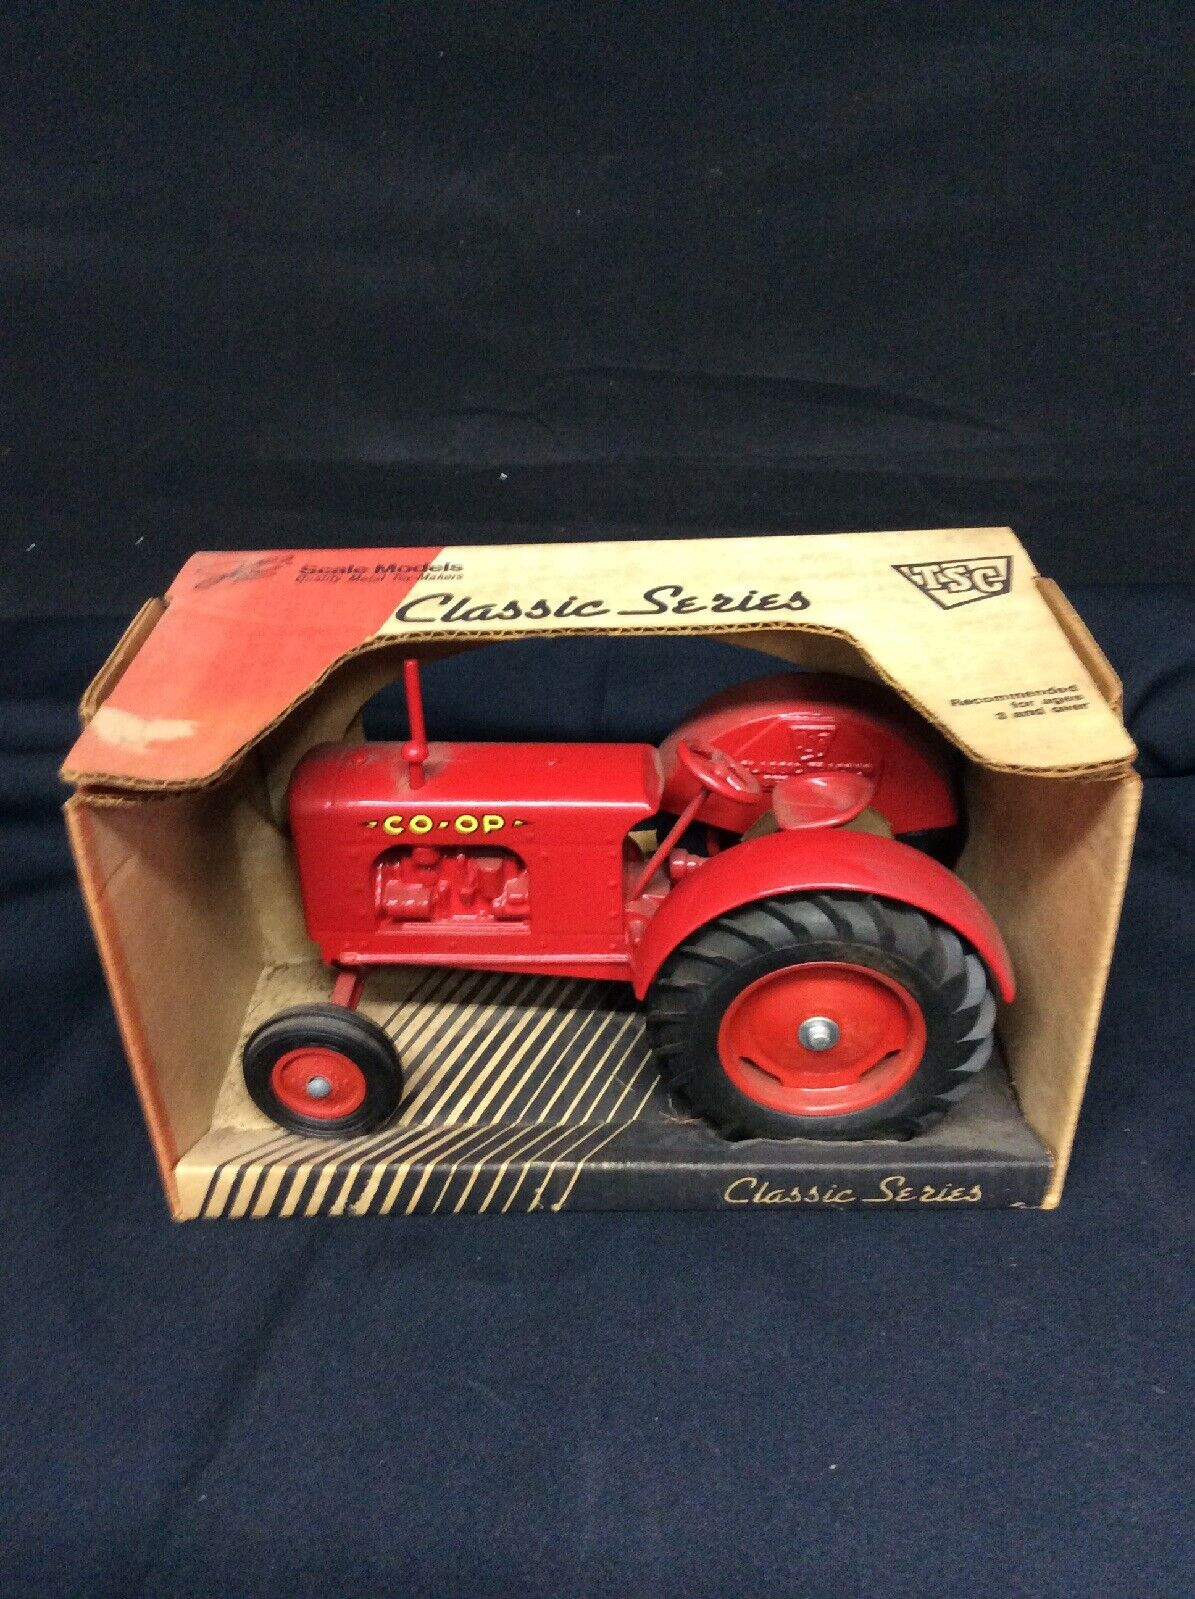 Scale Models Classic Series Co-op  farm toy tractor in 1 16th scale  TSC  NOS